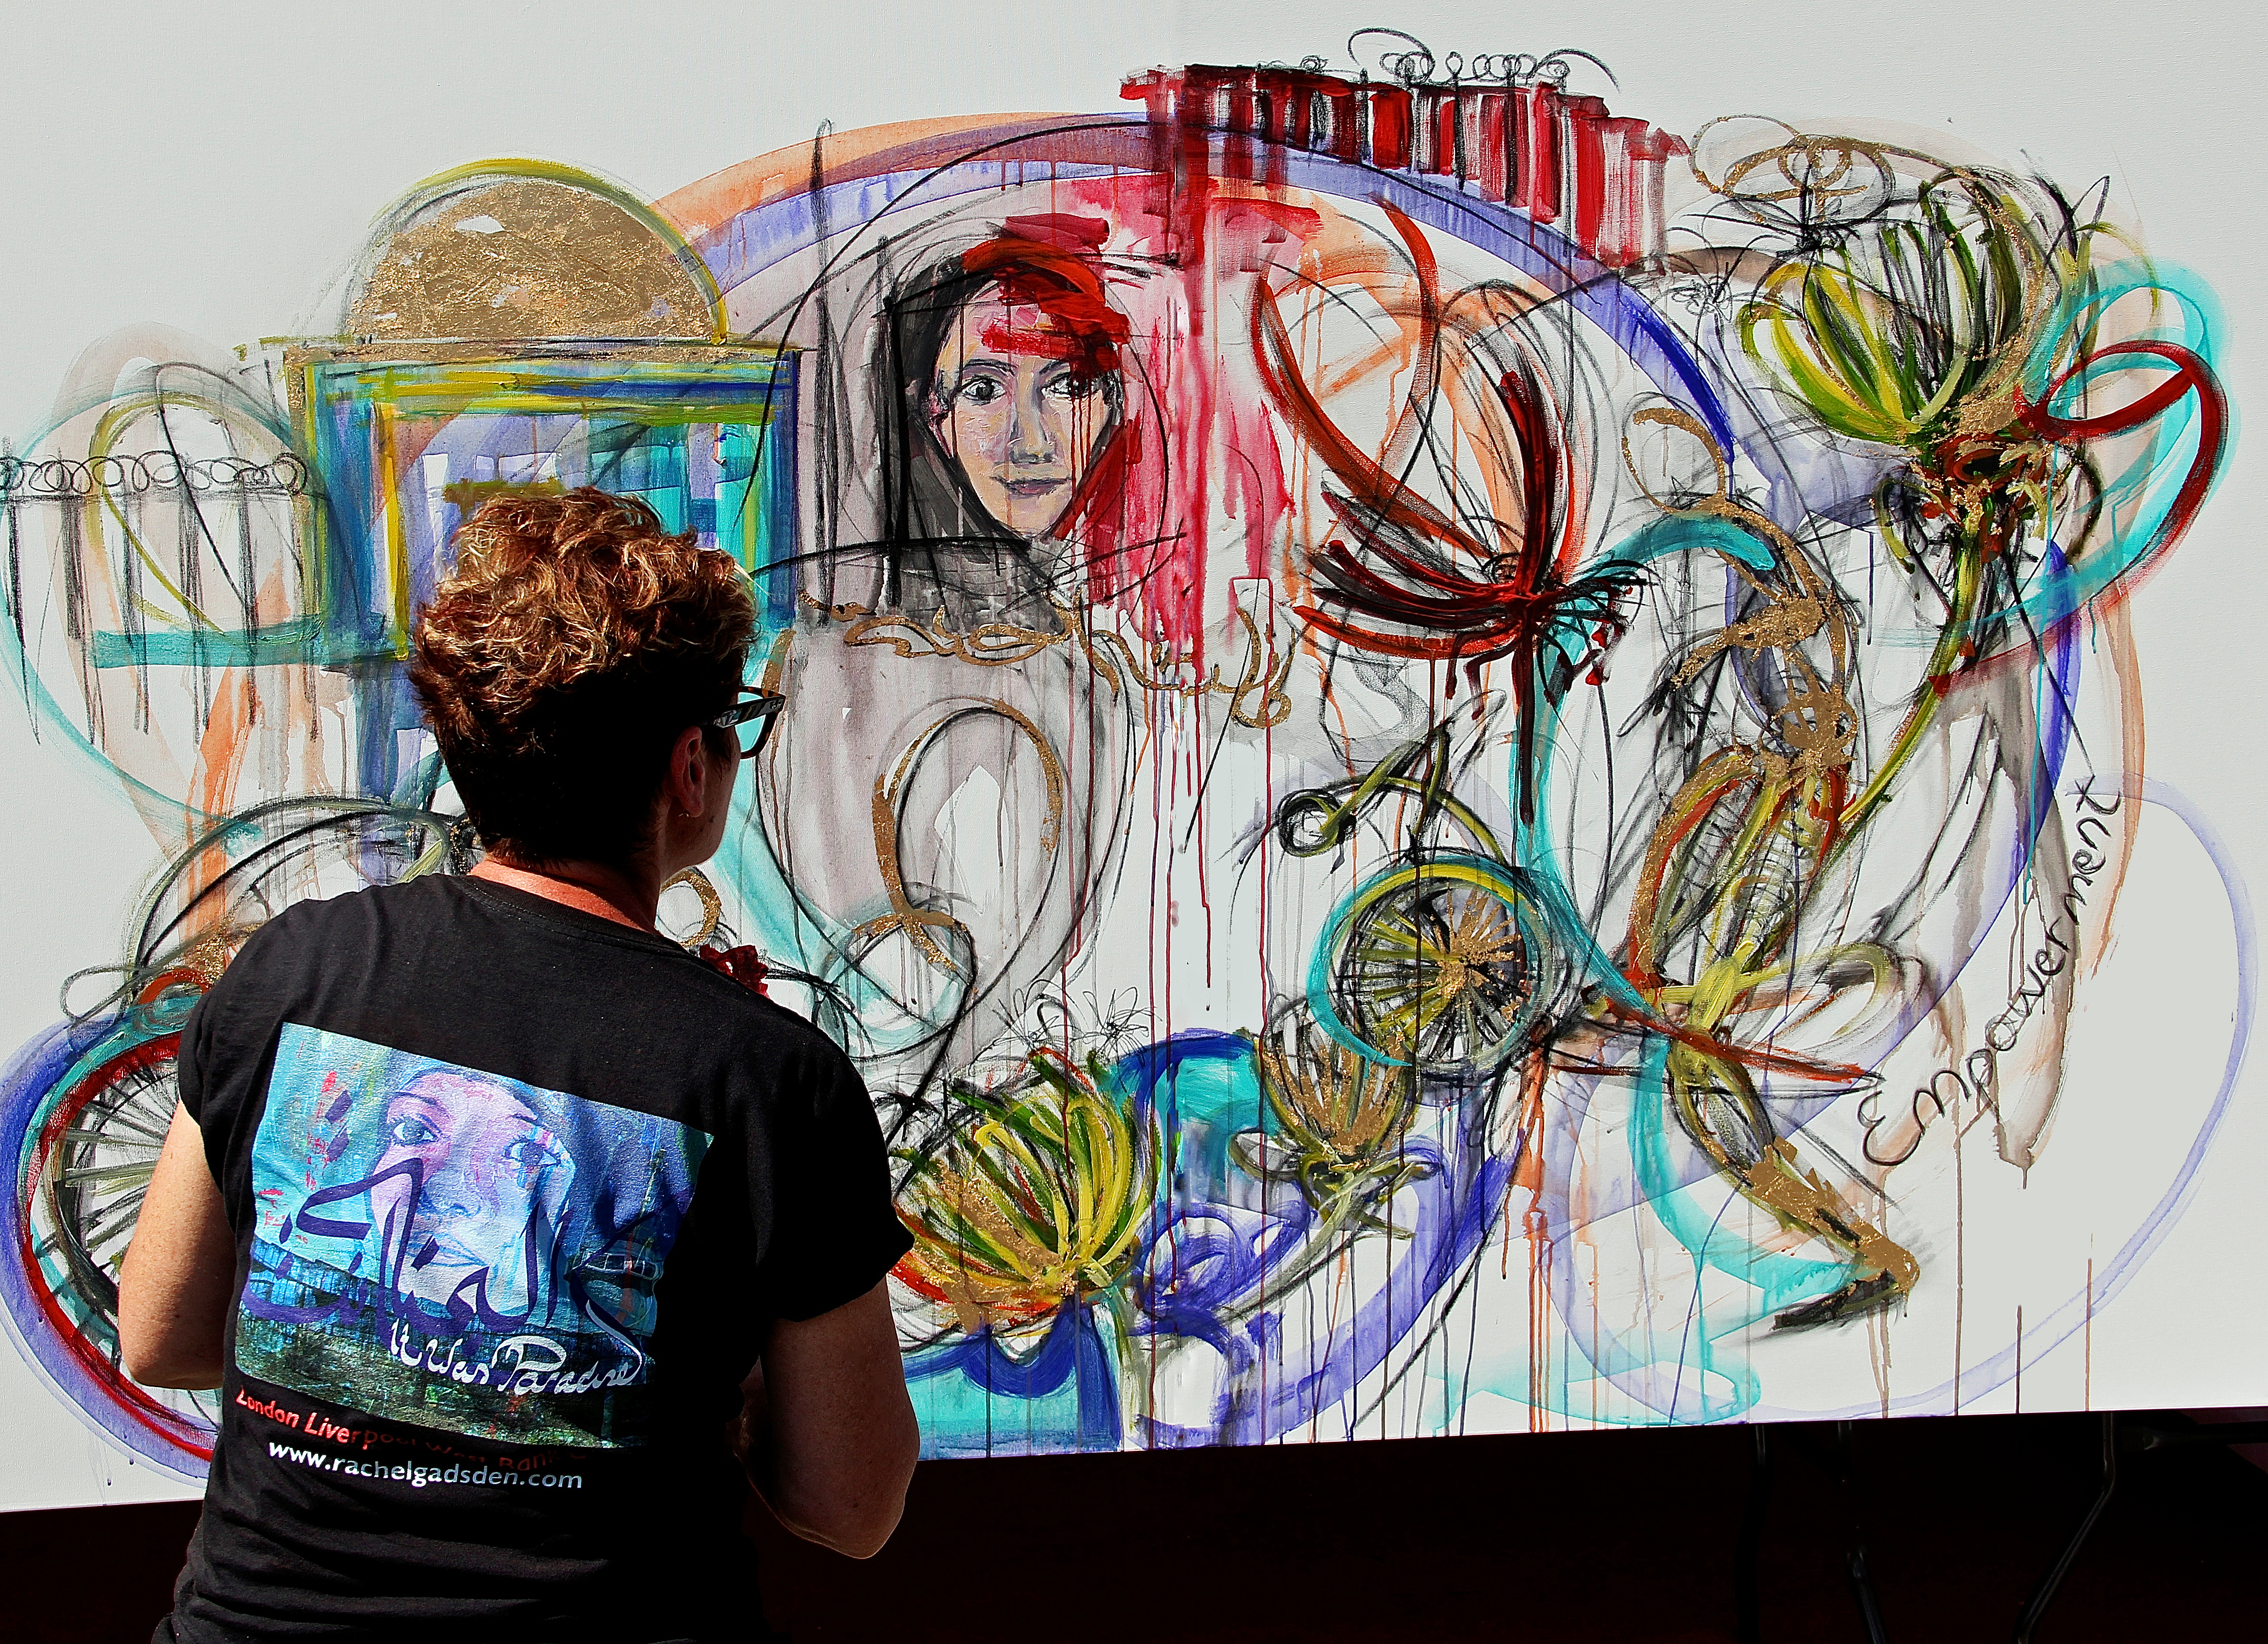 A woman facing her art looking at the details of her work. She is wearing a t-shirt.